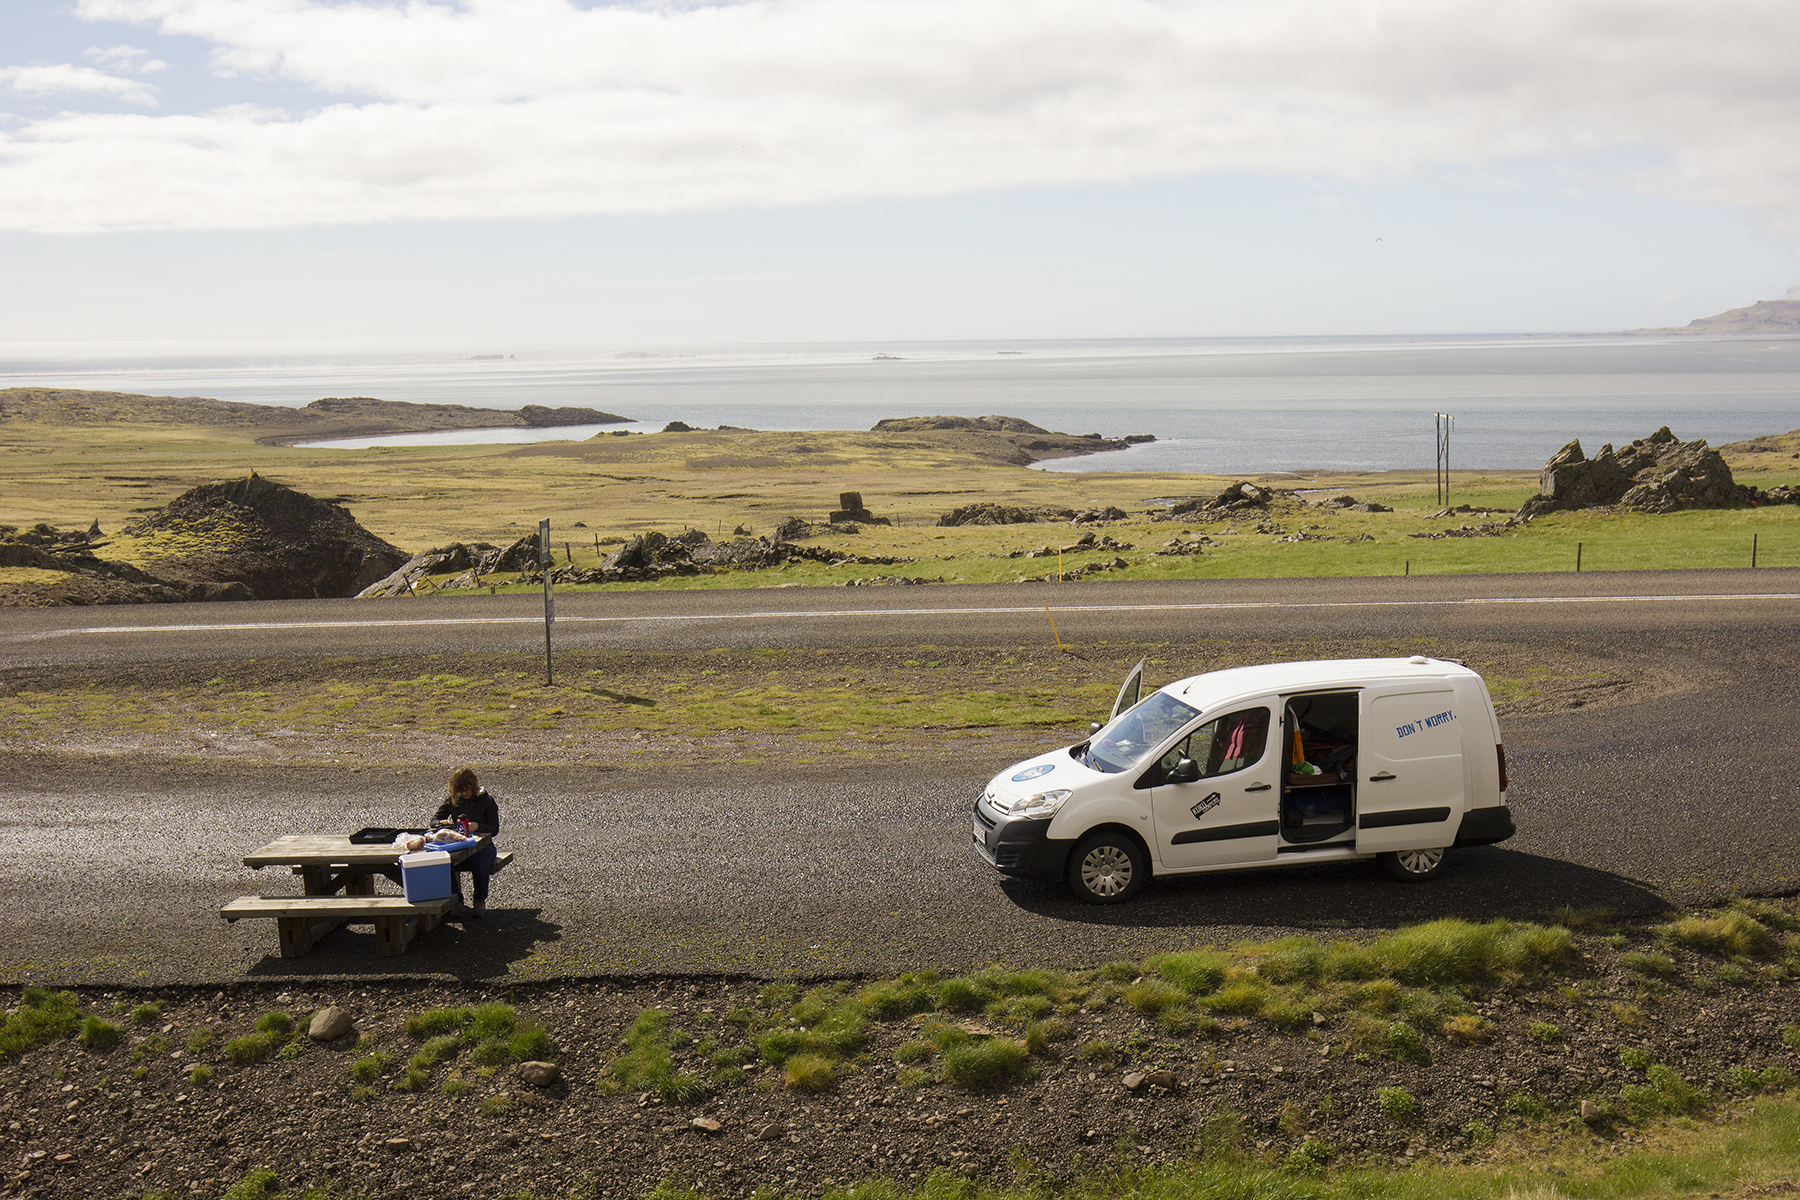 Roadside Picnic in Iceland